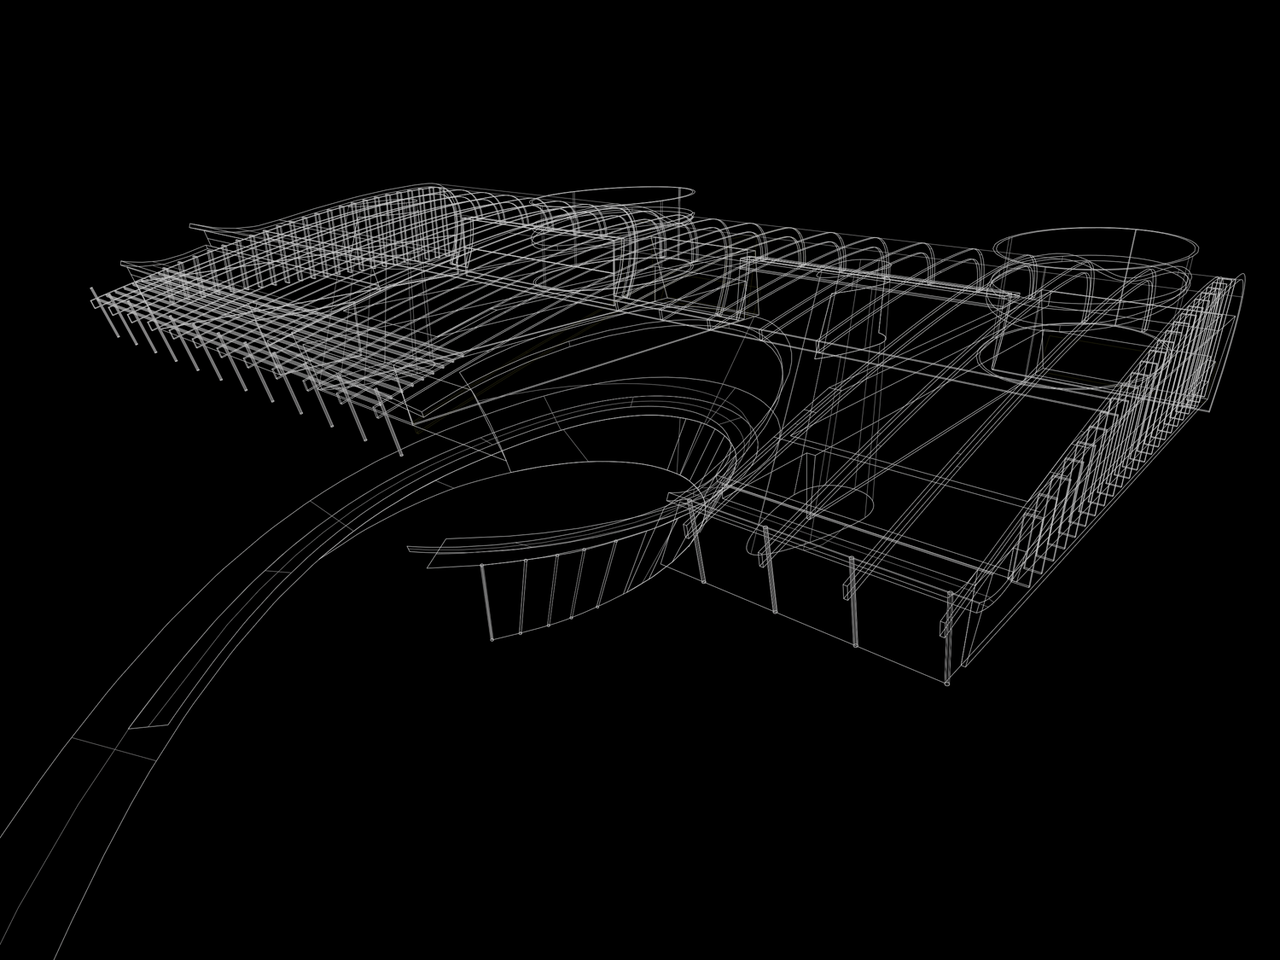 Aeronautics facility design meets nurbs modeling. Flow.